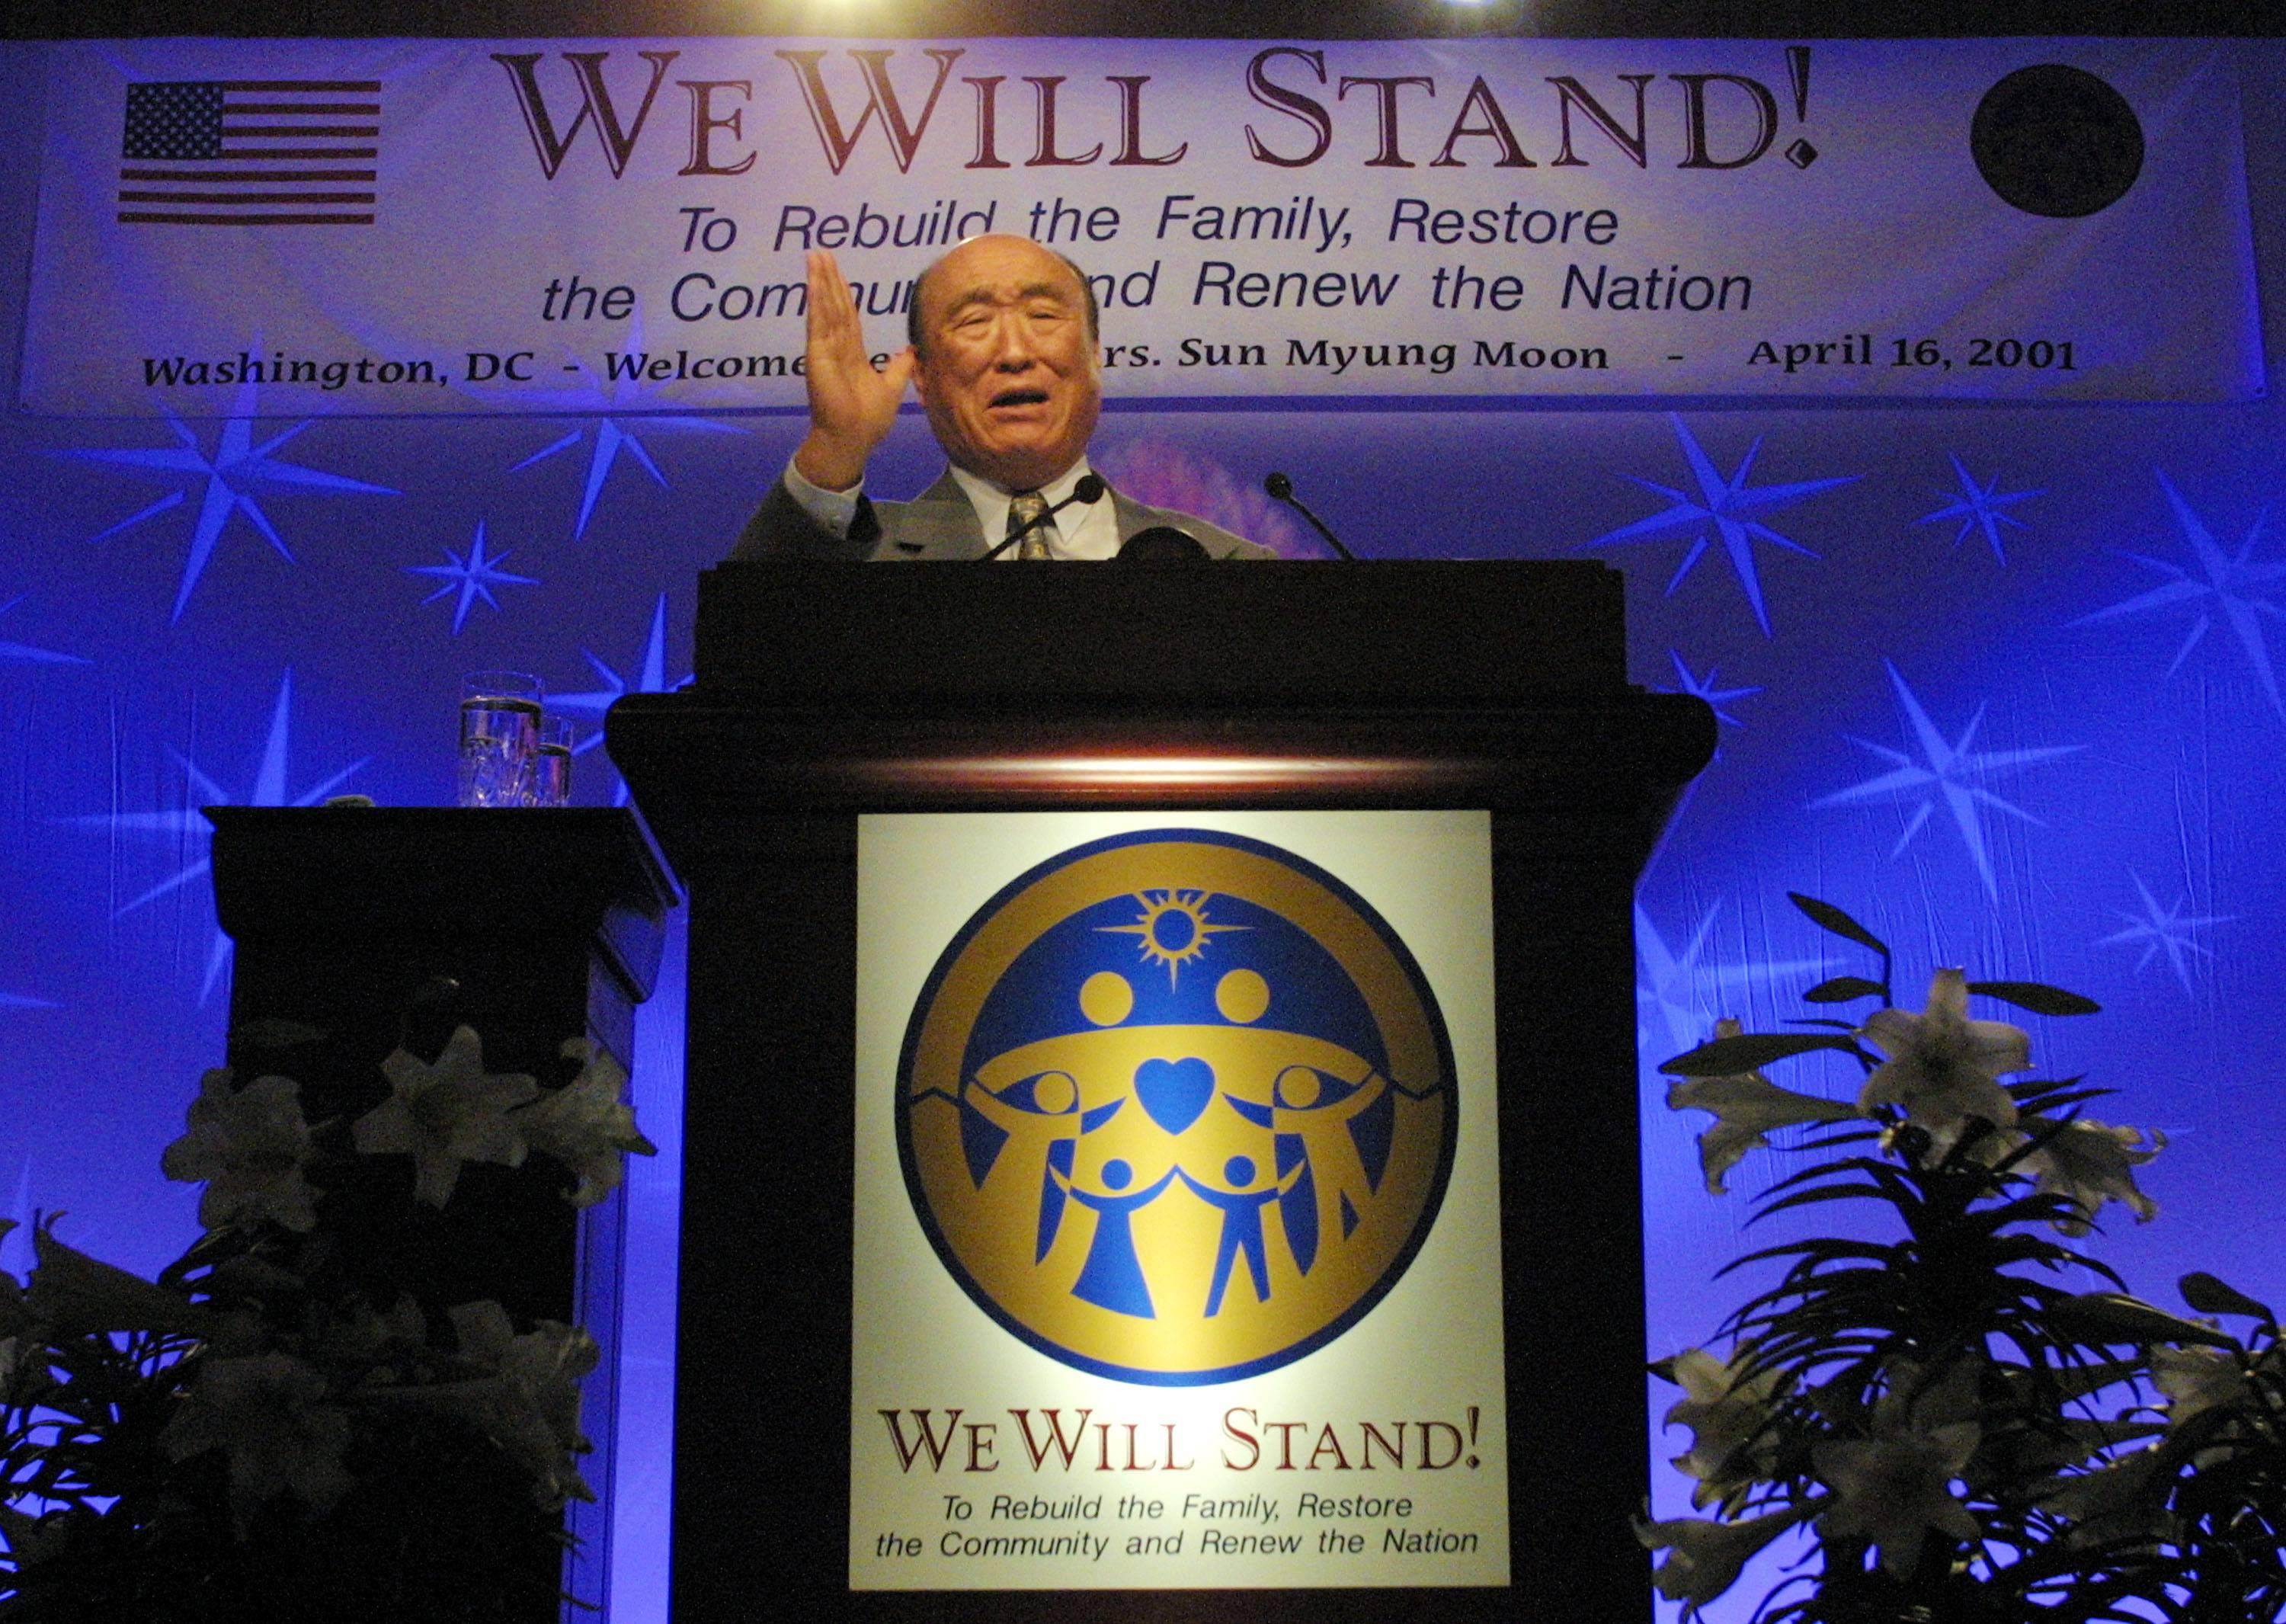 Reverend Sun Myung Moon founder of the Family Federation for World Peace and Unification, speaks